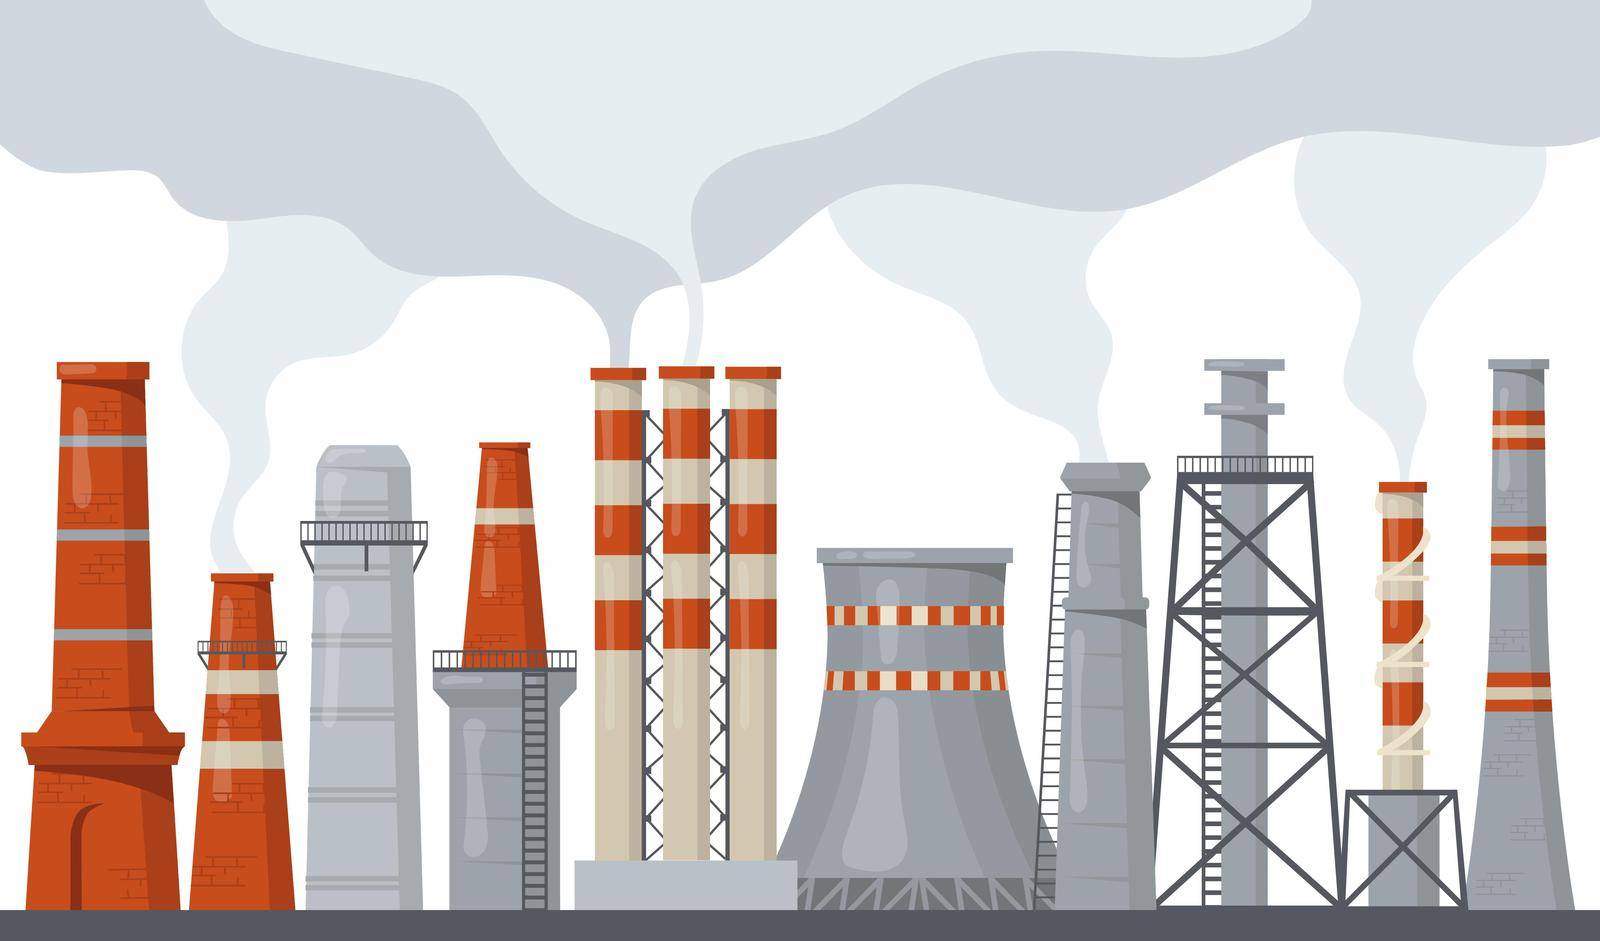 Pipe and stack factory with toxic power energy flat illustration set. Cartoon industrial chimney pollution with smoke or steam isolated vector illustration collection. Environment and ecology concept